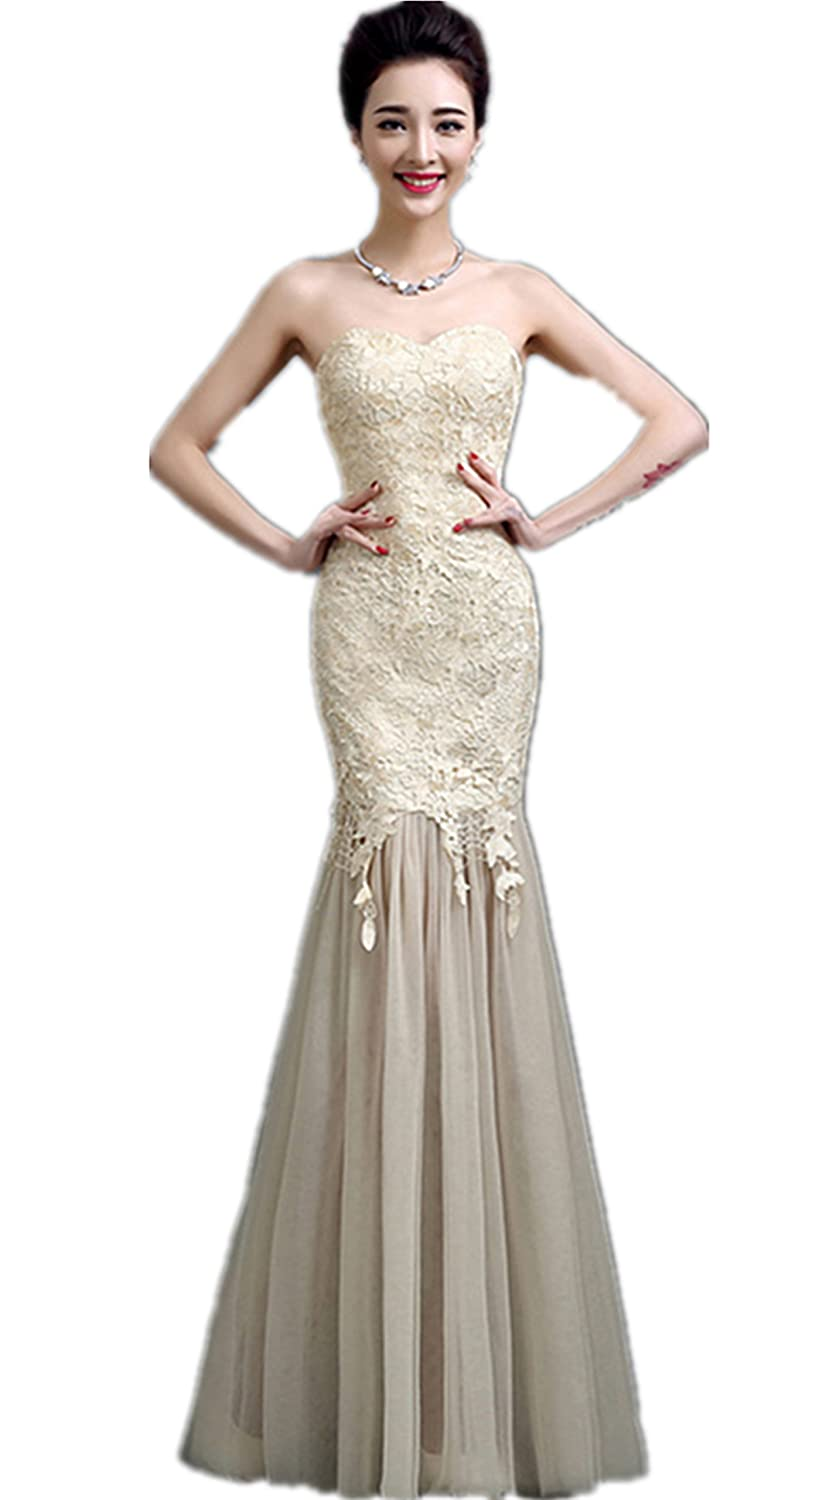 atopdress LL7 lace fishtail prom sequined gown evening dress party wear (8, Champagne): Amazon.co.uk: Clothing